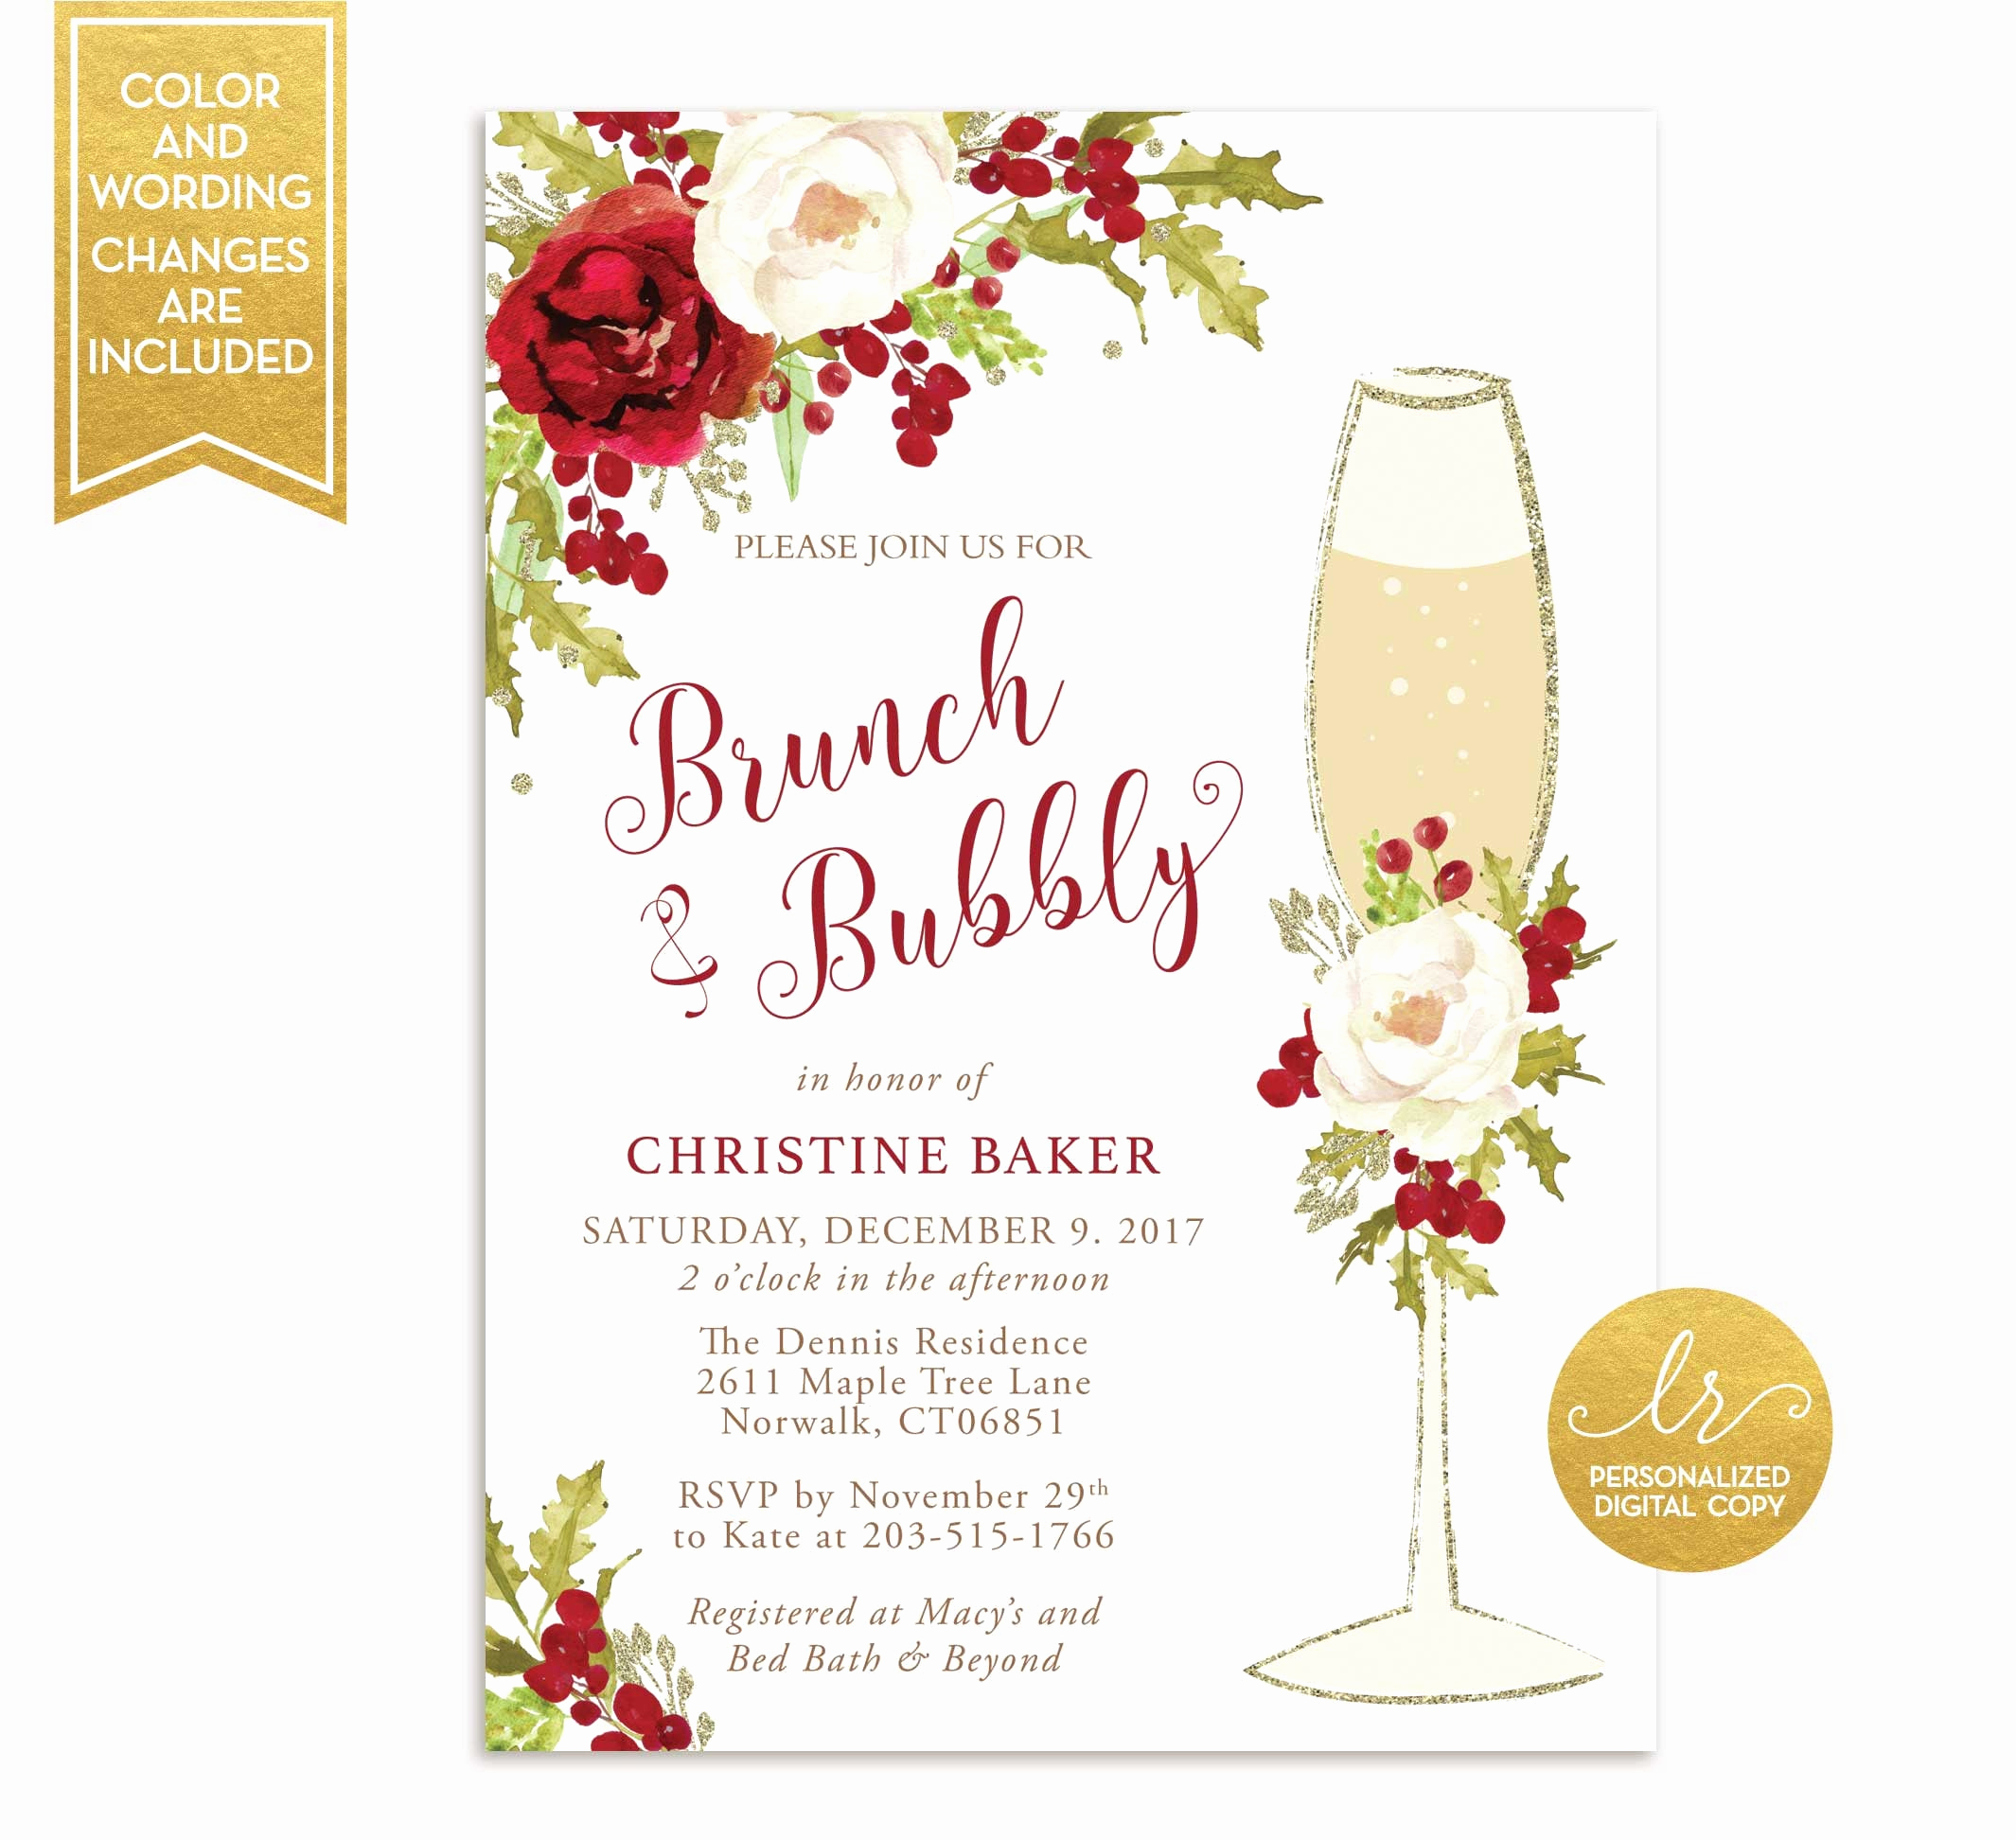 Bridal Shower Brunch Invitation Wording Luxury Winter Brunch and Bubbly Bridal Shower Invitation Holiday